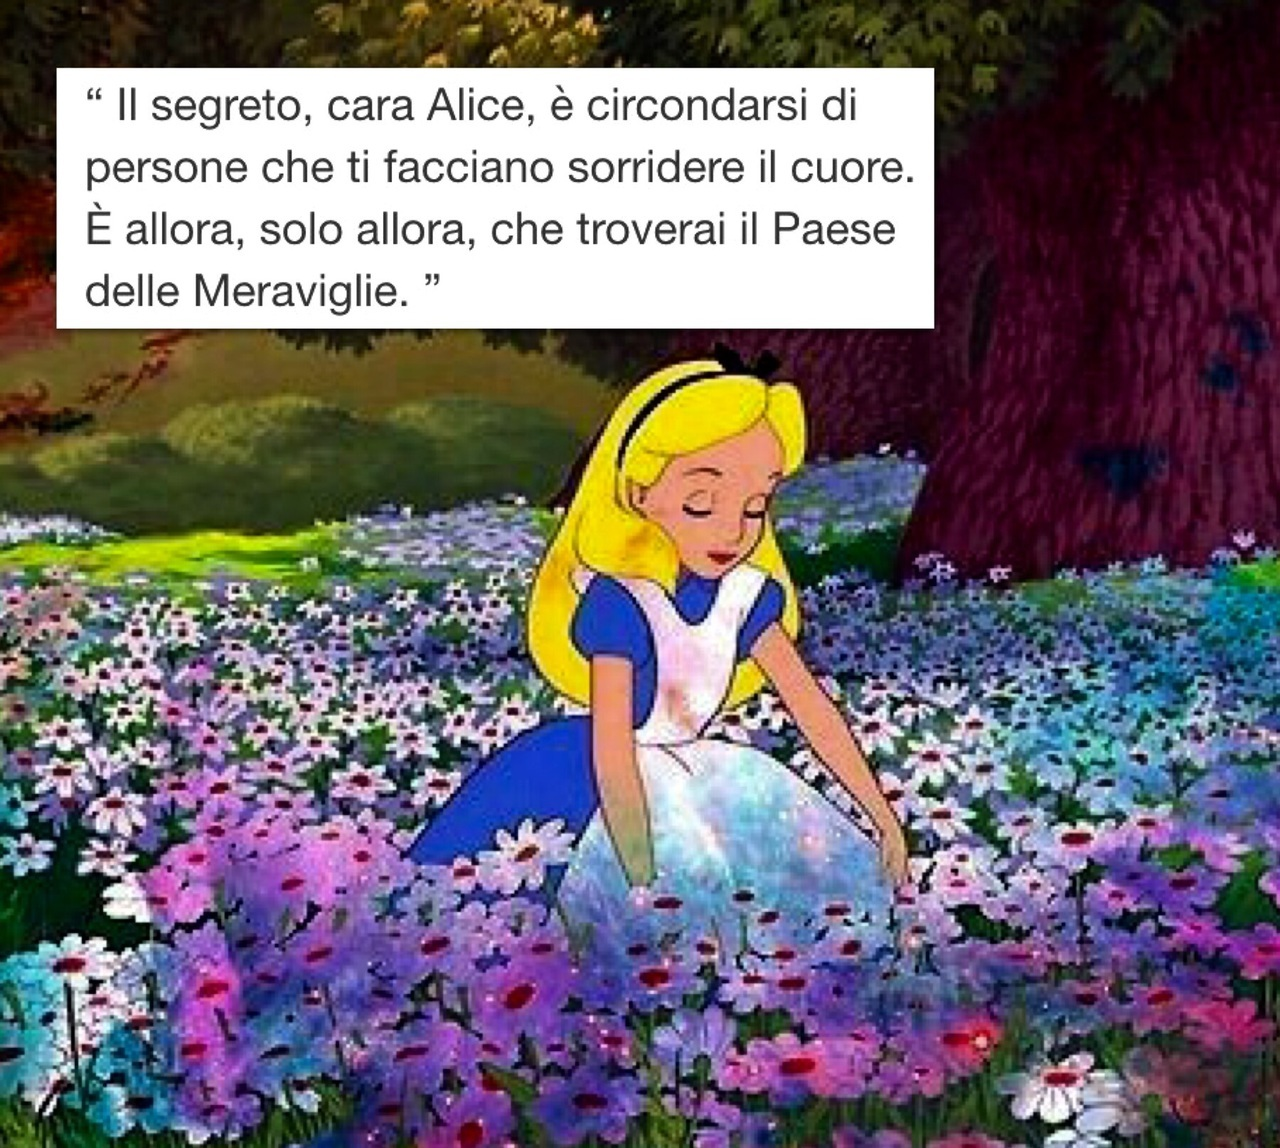 Image About Alice In Wonderland In Frasi By Ale